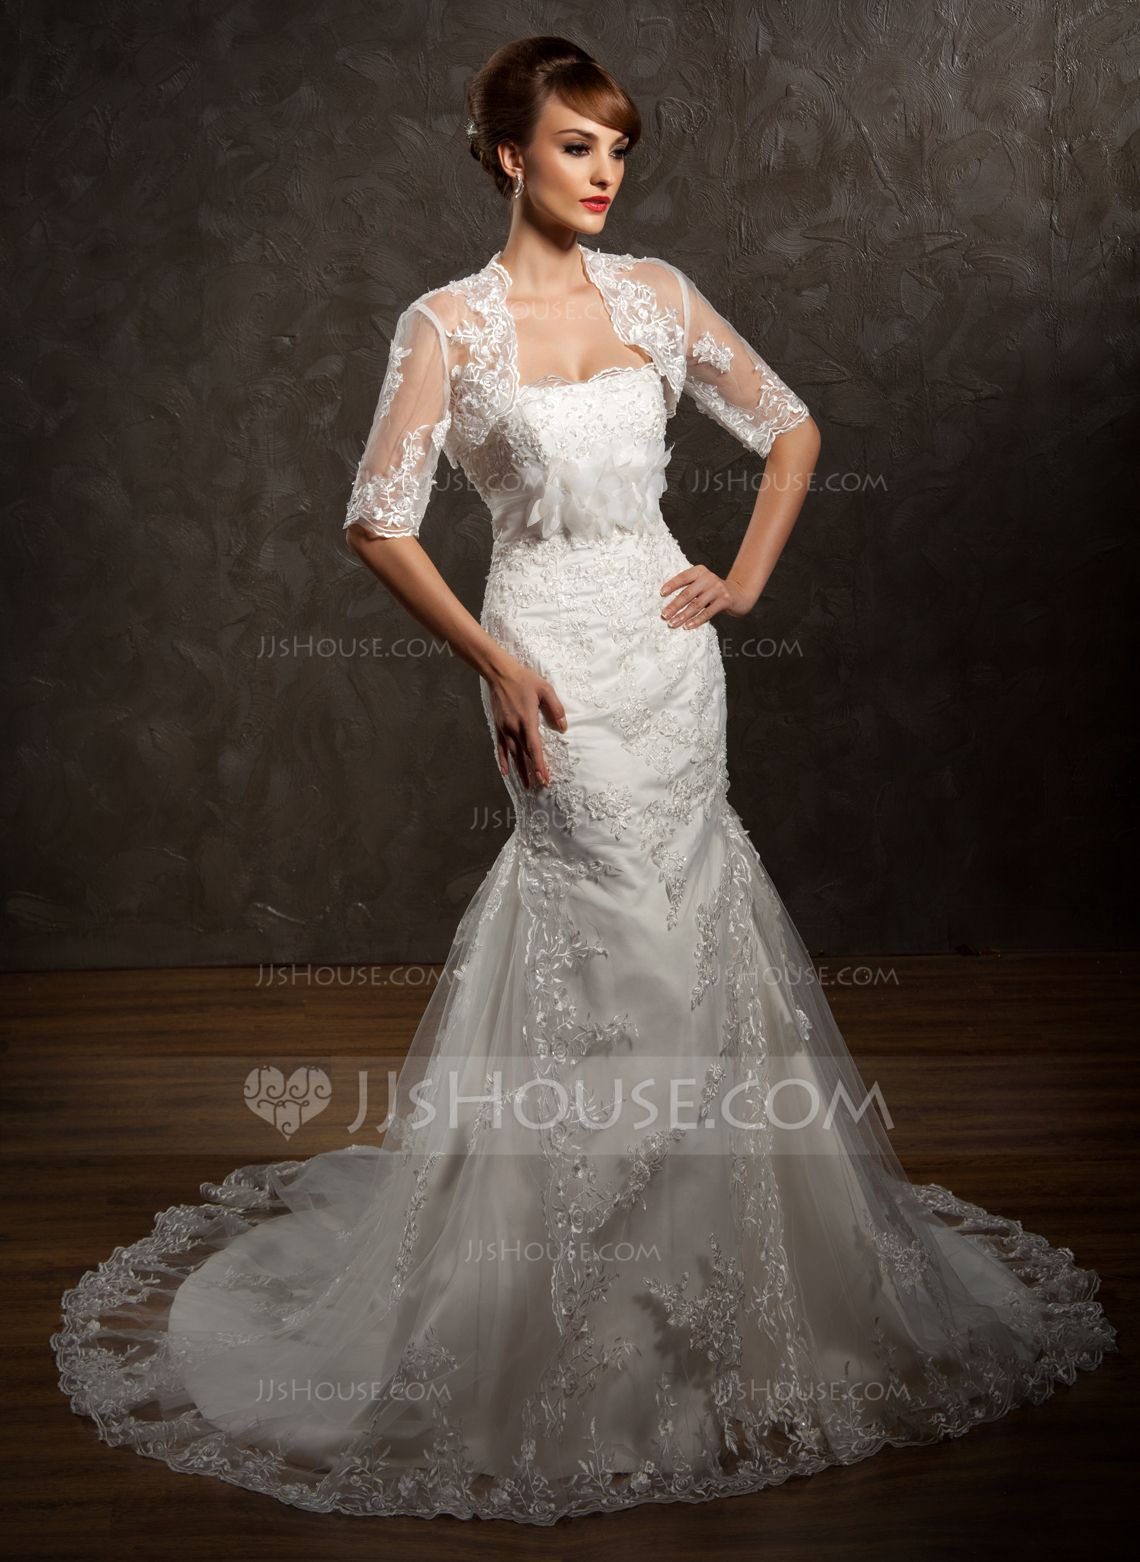 Plus size wedding reception dresses for guests  HalfSleeve Lace Wedding Wrap   JJsHouse  Wedding Gowns